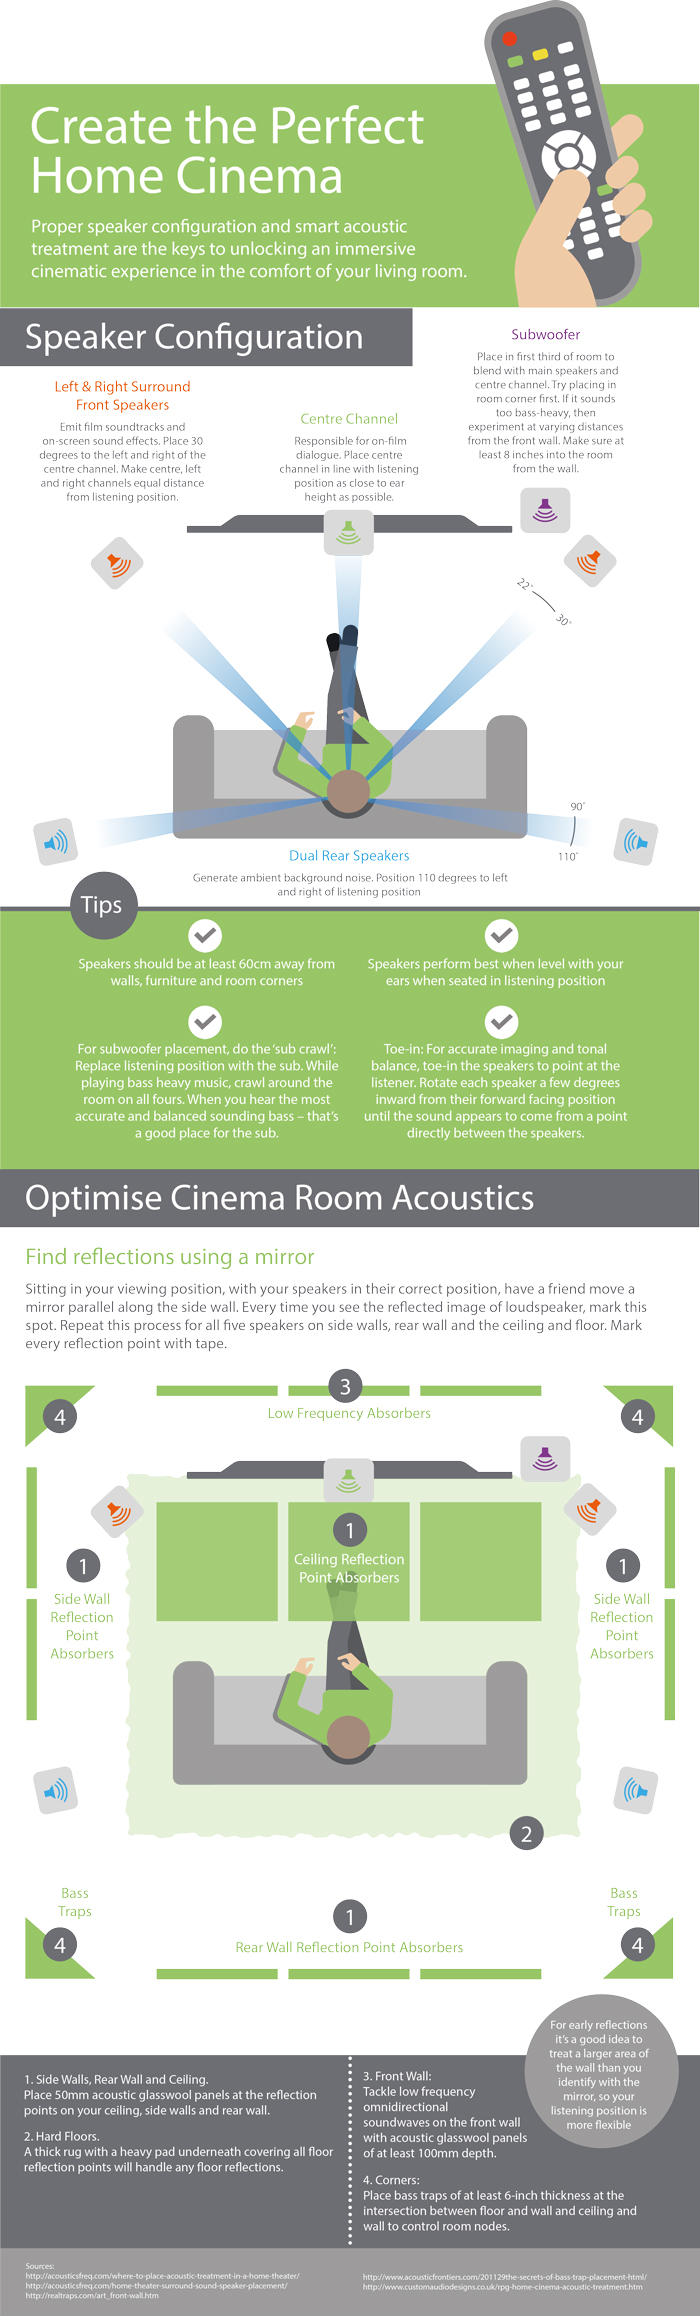 Home cinema acoustics infographic